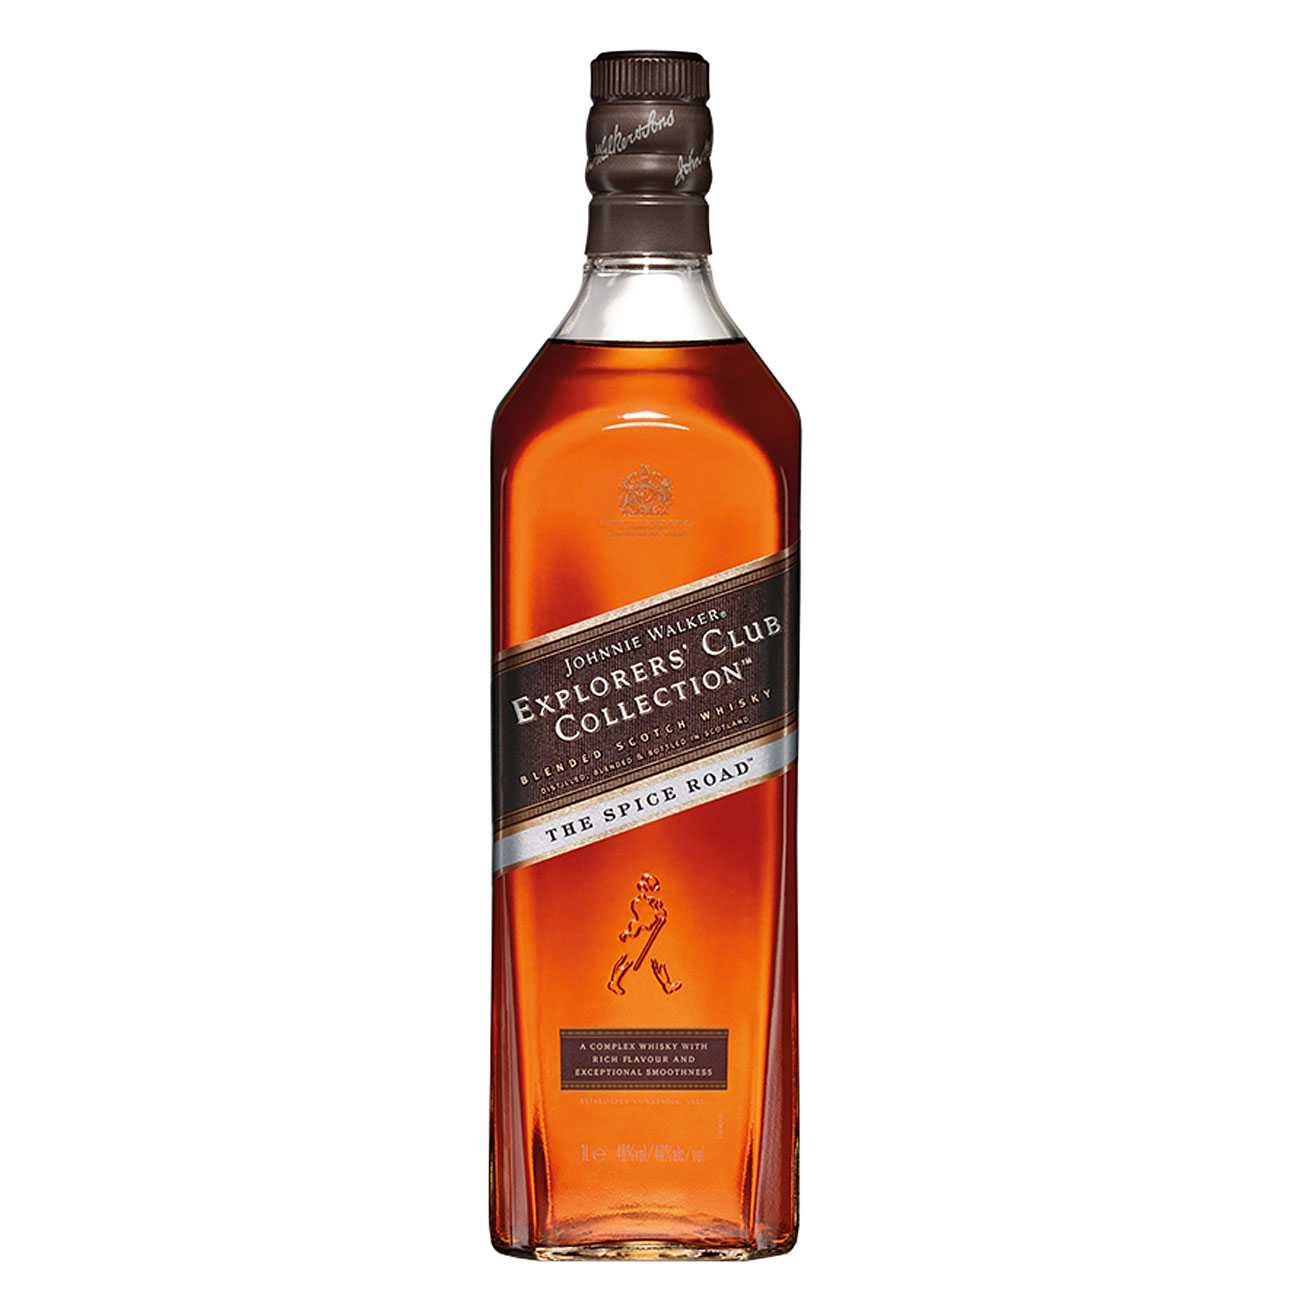 Whisky scotian, EXPLORERS CLUB COLLECTION THE SPICE ROAD 1000 ML, Johnnie Walker